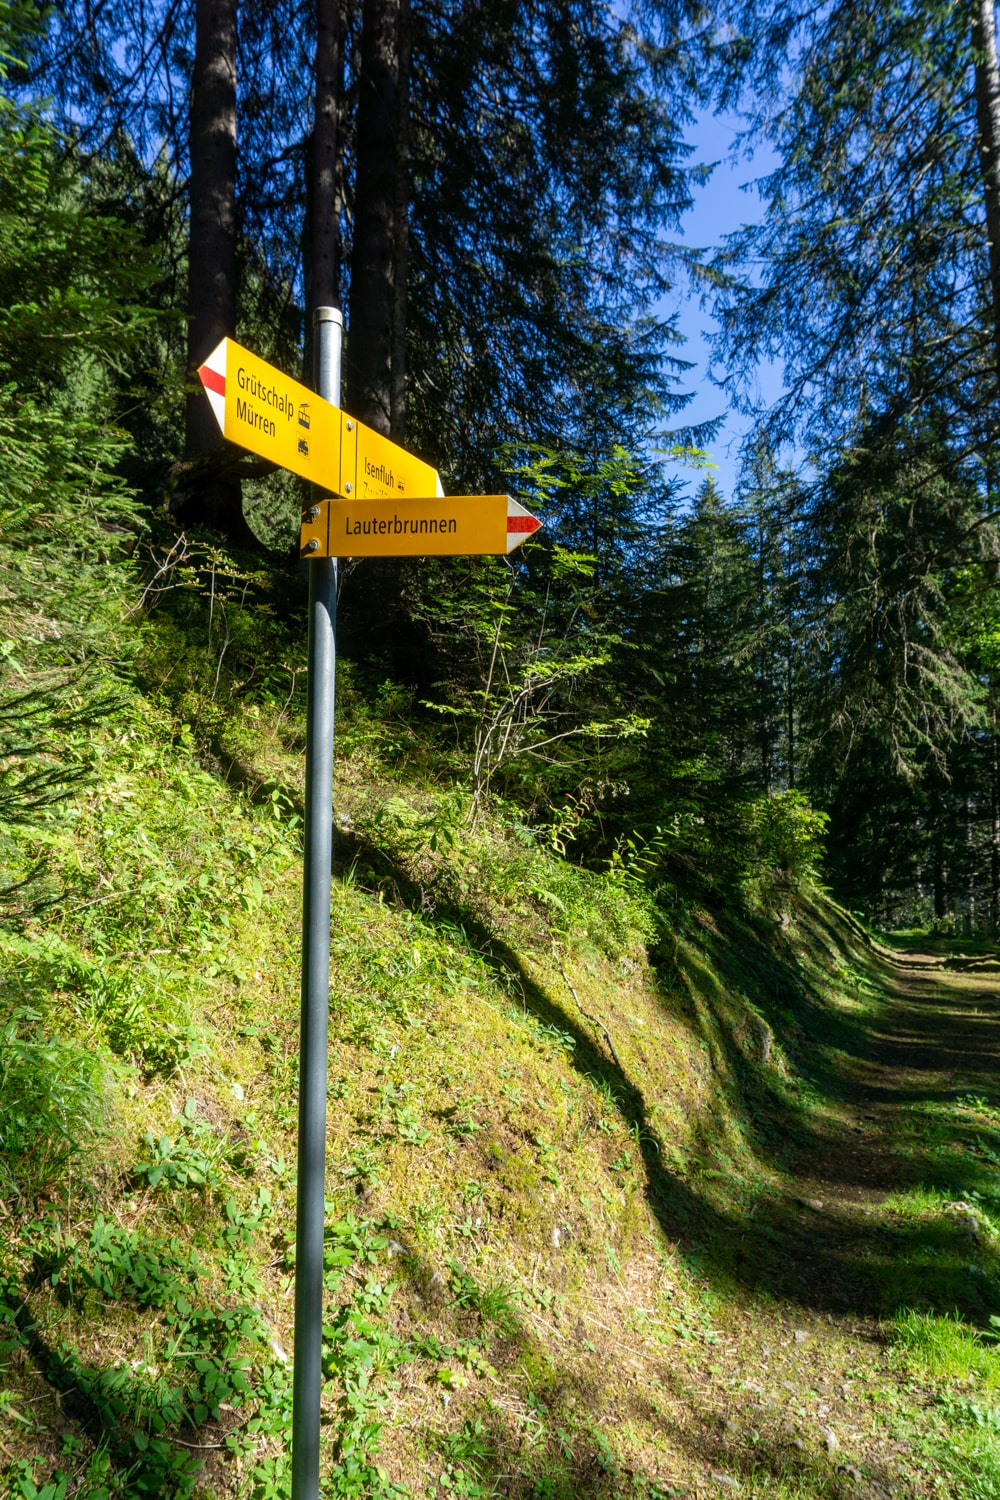 Hiking trails in Lauterbrunnen